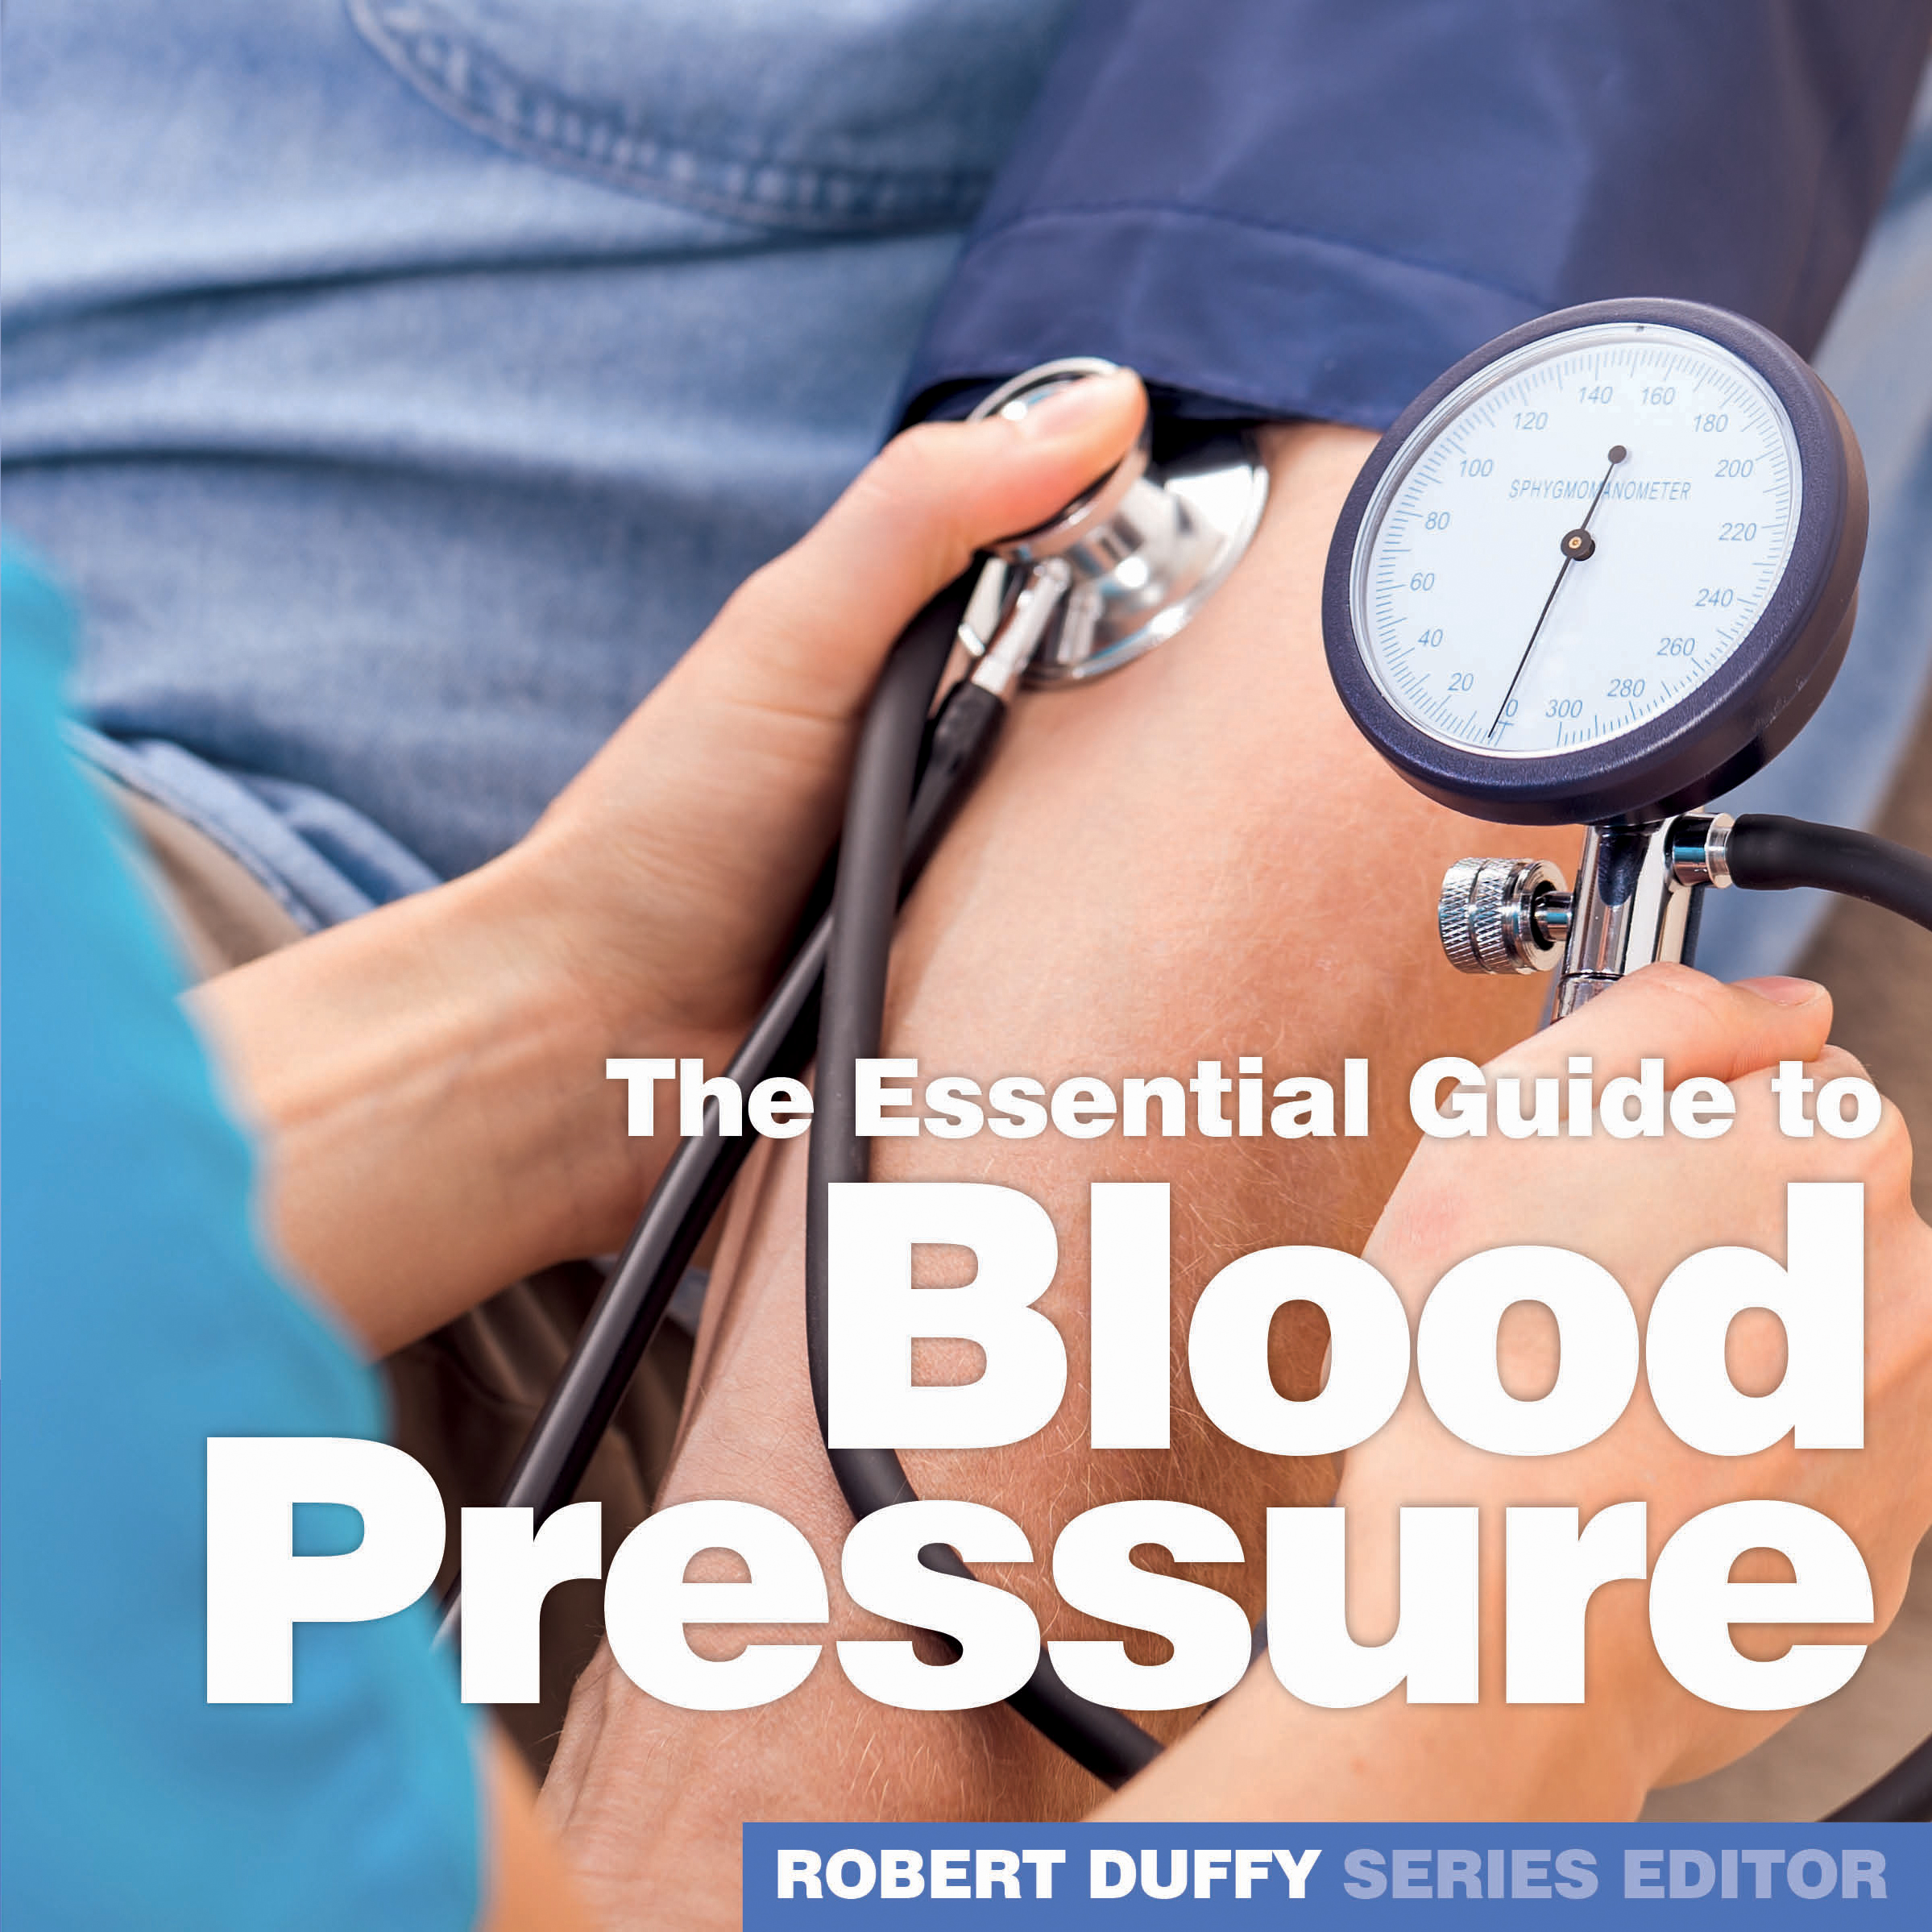 The Essential Guide to Blood Pressure